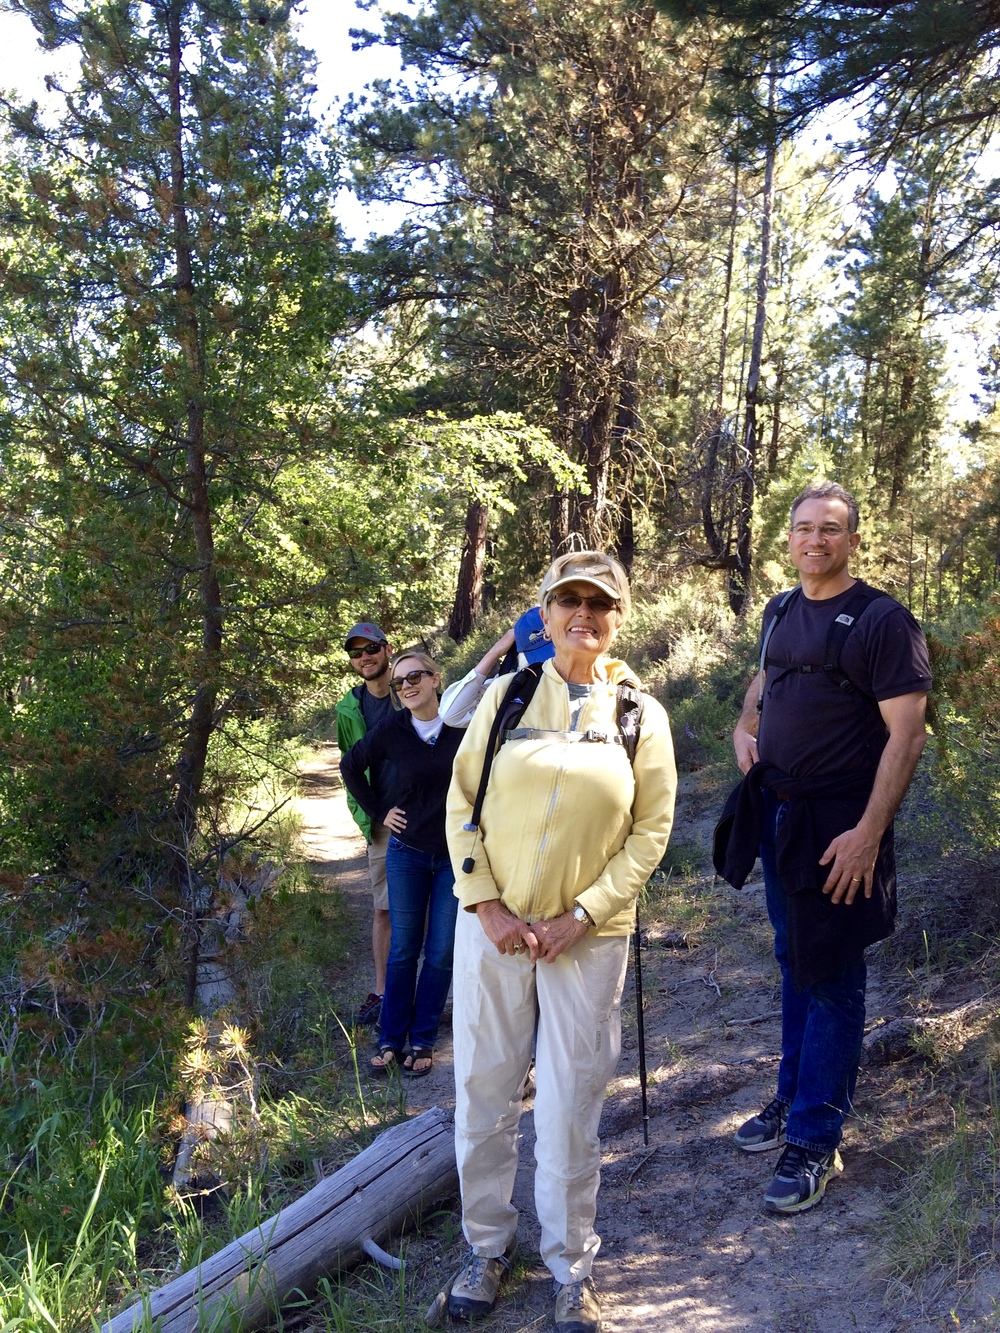 COLW Hike in La Pine State Park earlier this summer